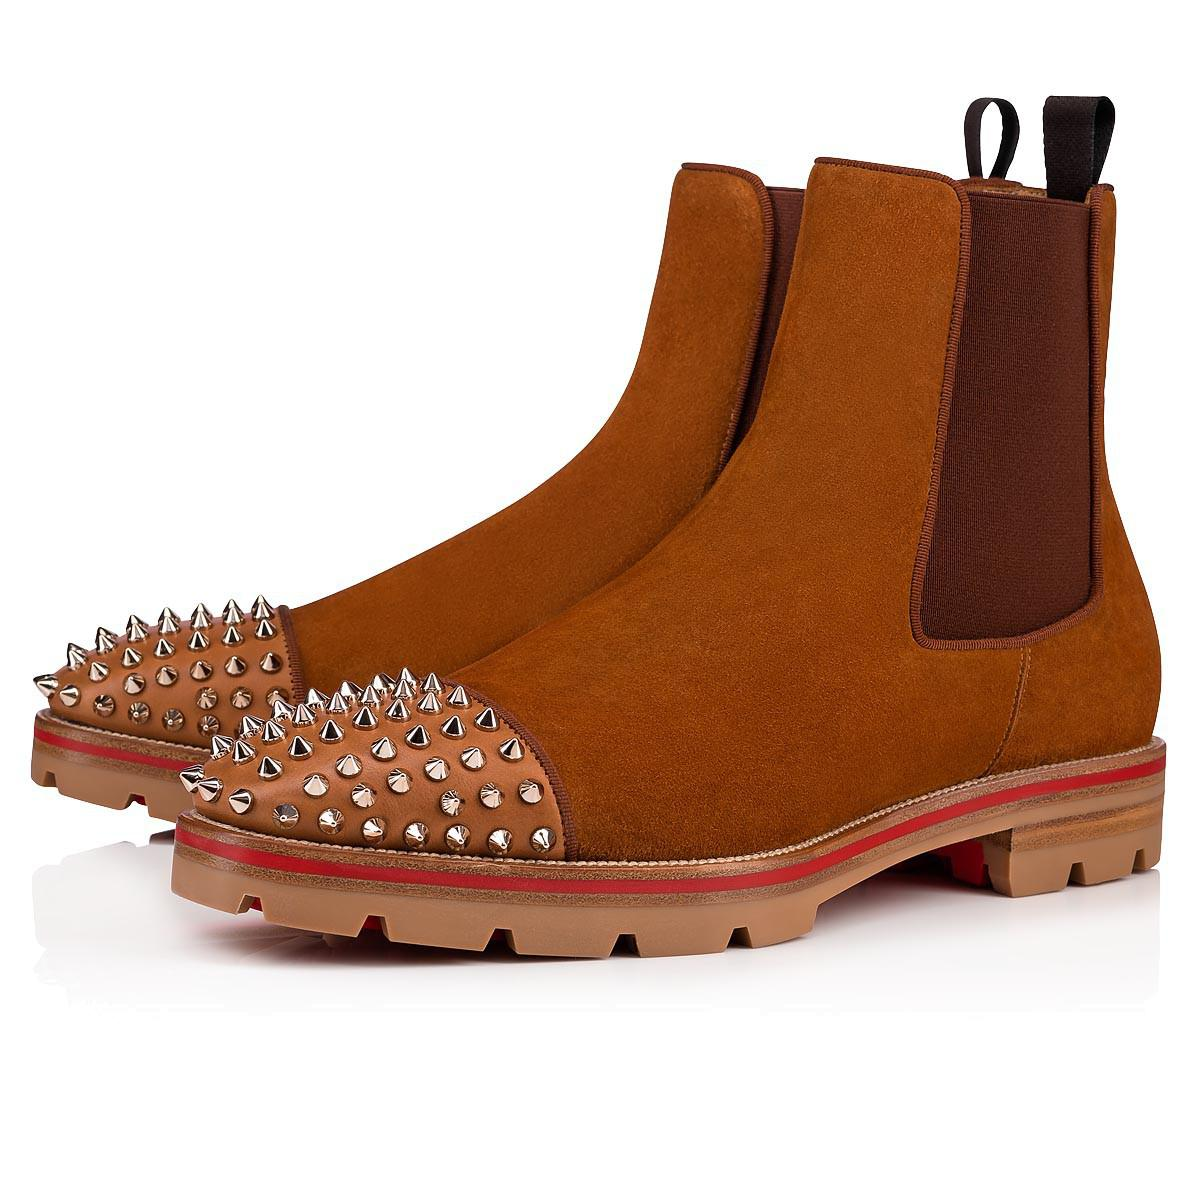 ee1c841b89e8 Lyst - Christian Louboutin Melon Spikes Flat in Brown for Men